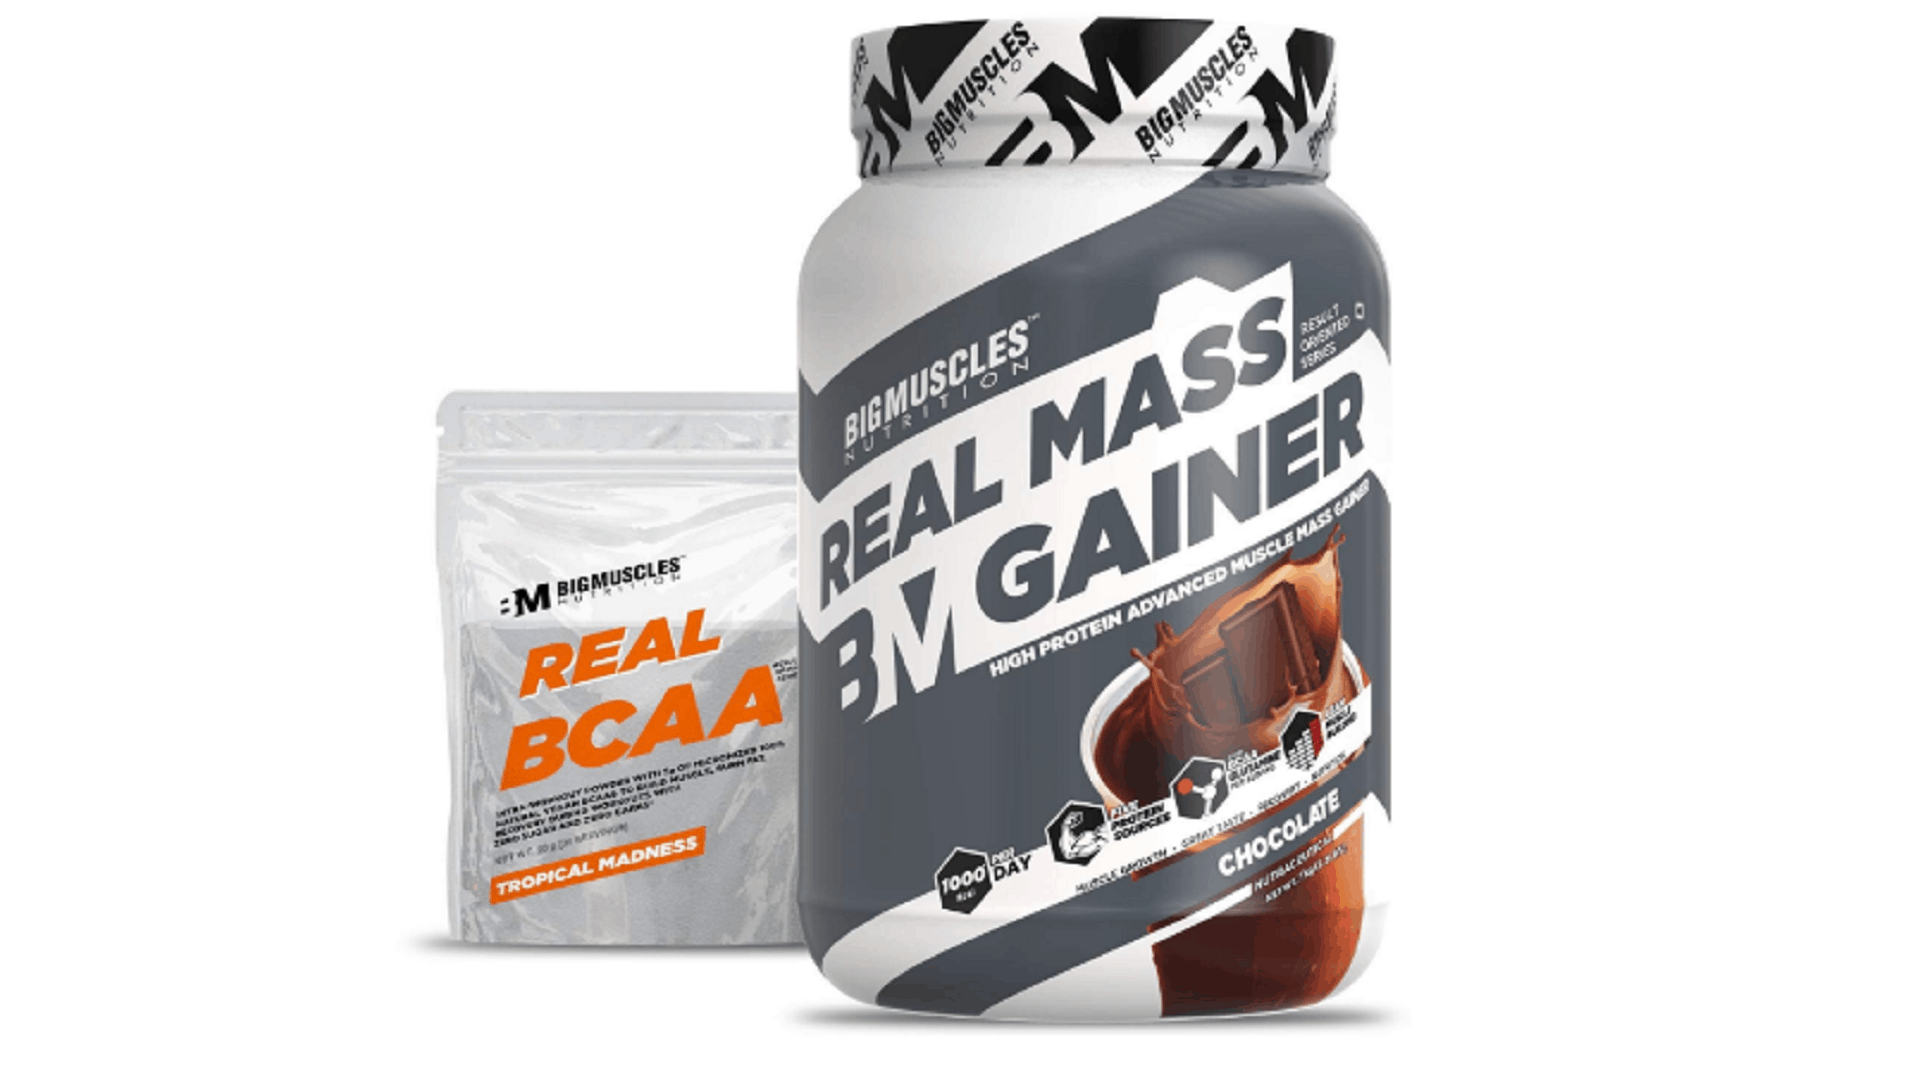 big muscle real mass gainer